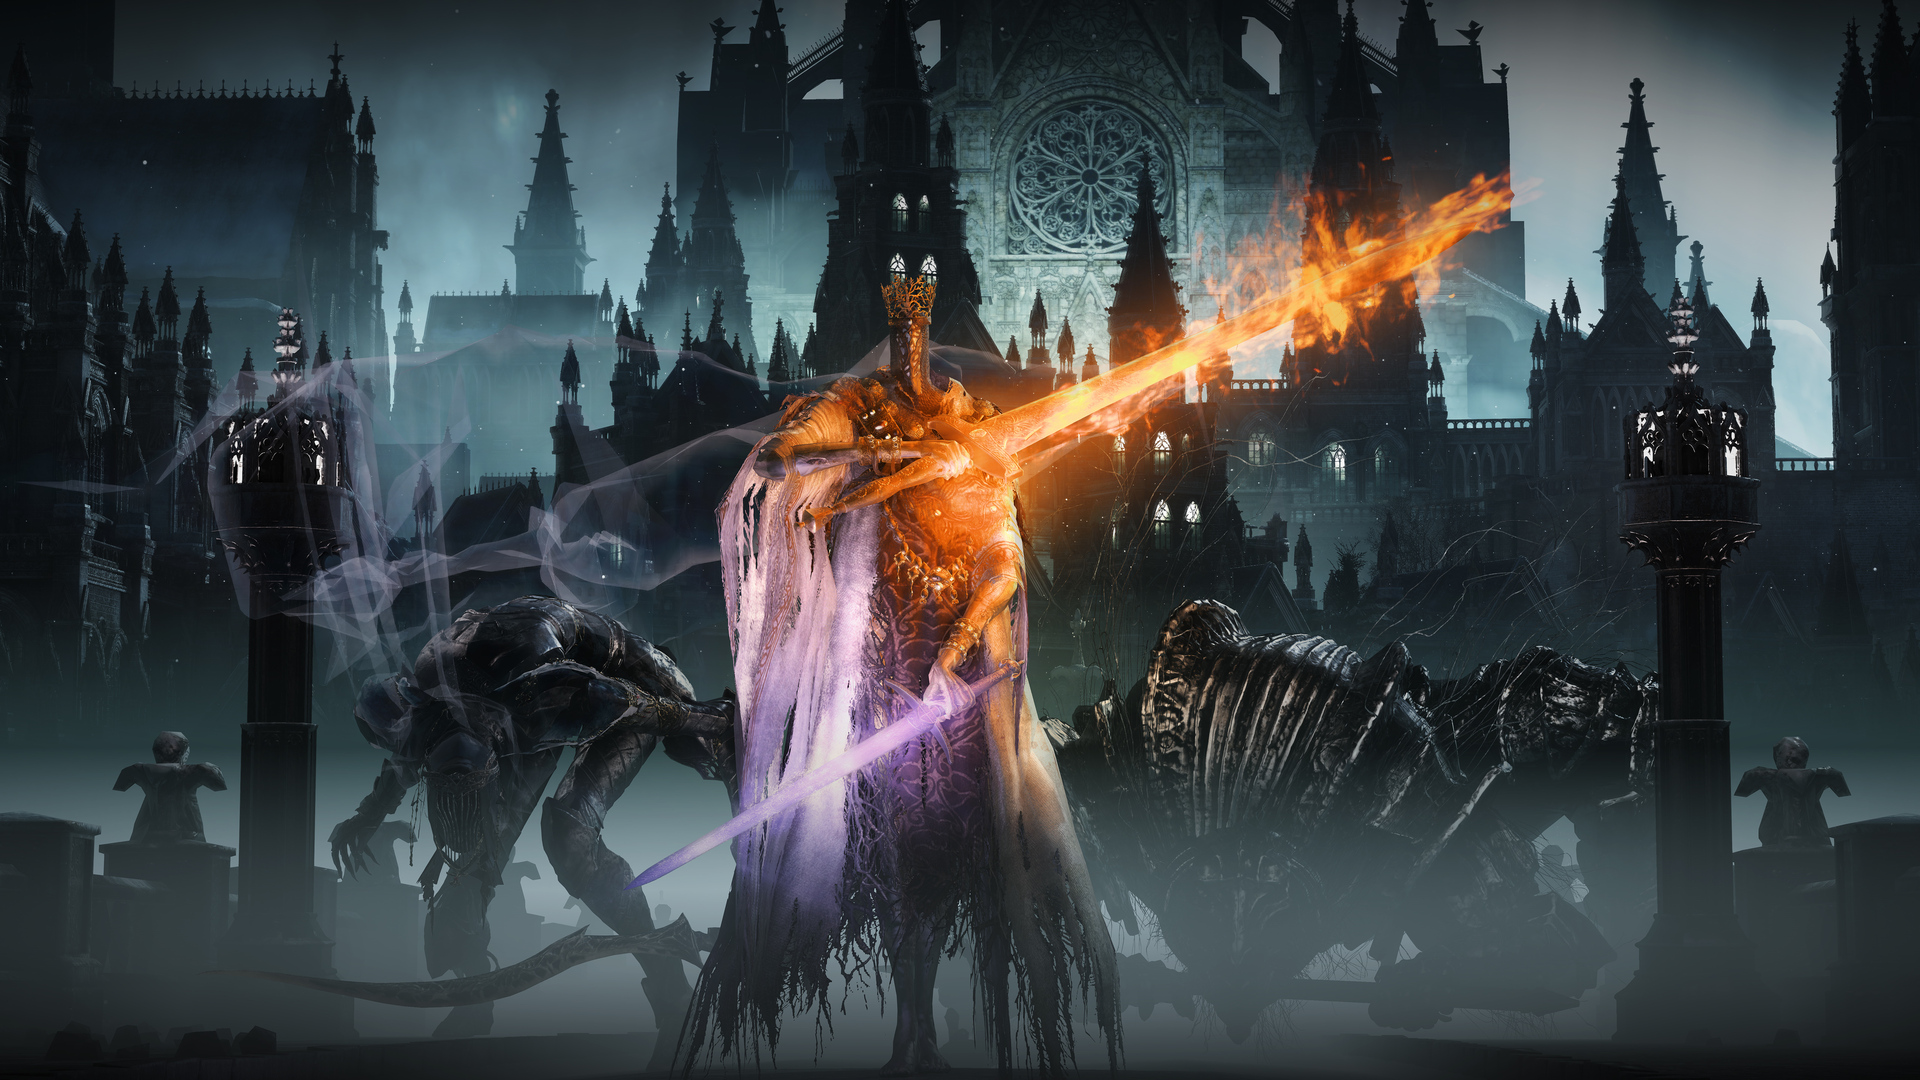 1920x1080 Dark Souls 3 5k Laptop Full Hd 1080p Hd 4k Wallpapers